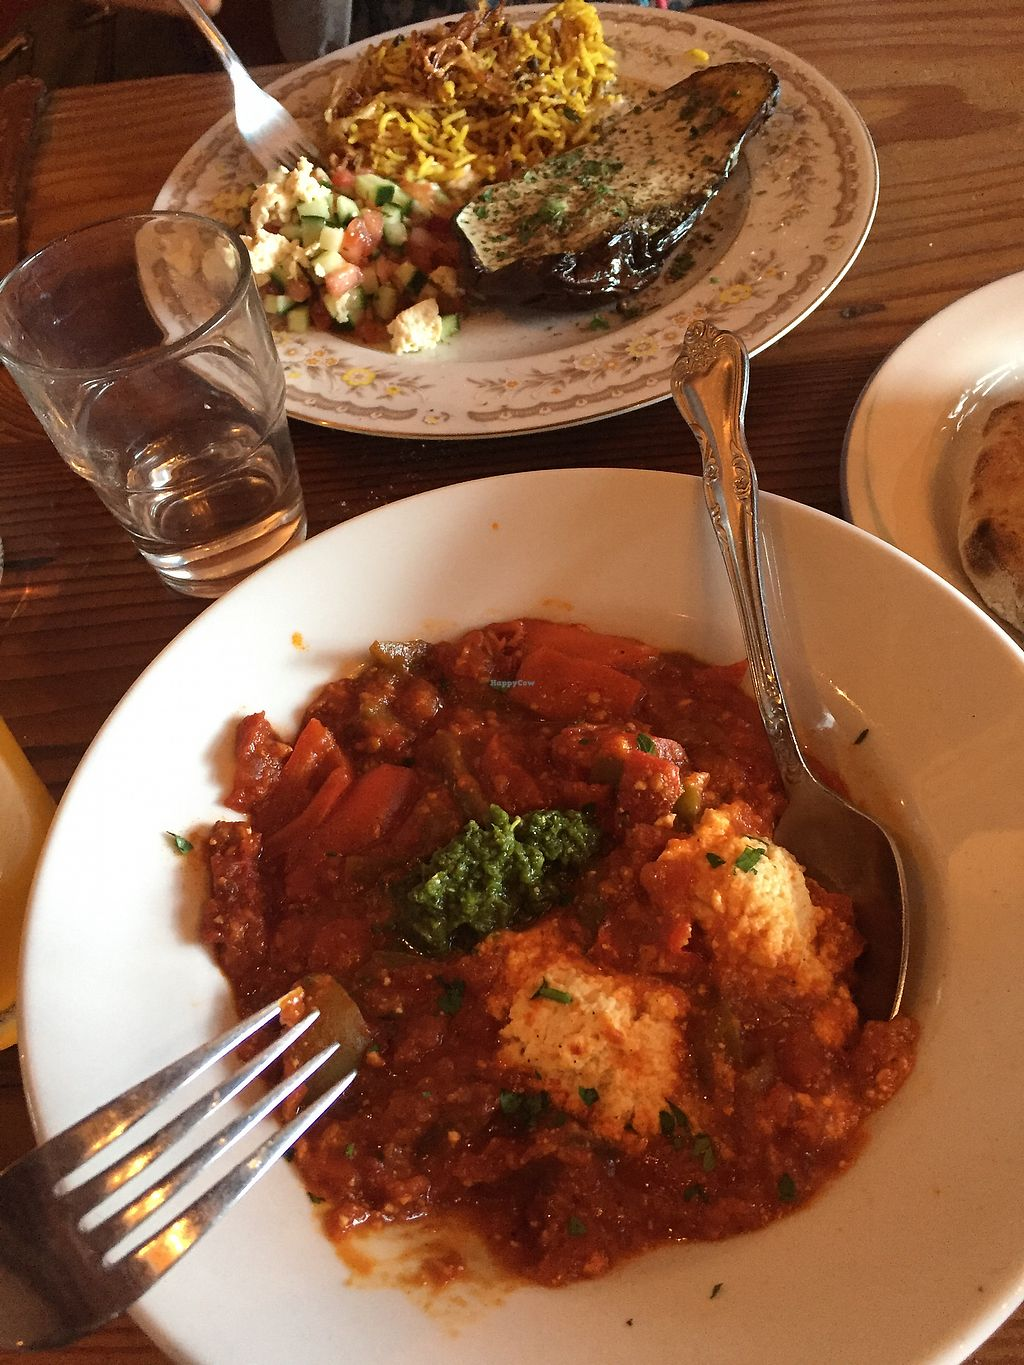 """Photo of Aviv  by <a href=""""/members/profile/carolinep"""">carolinep</a> <br/>Shakshuka + Grilled Eggplant Plate <br/> August 19, 2017  - <a href='/contact/abuse/image/93167/294146'>Report</a>"""